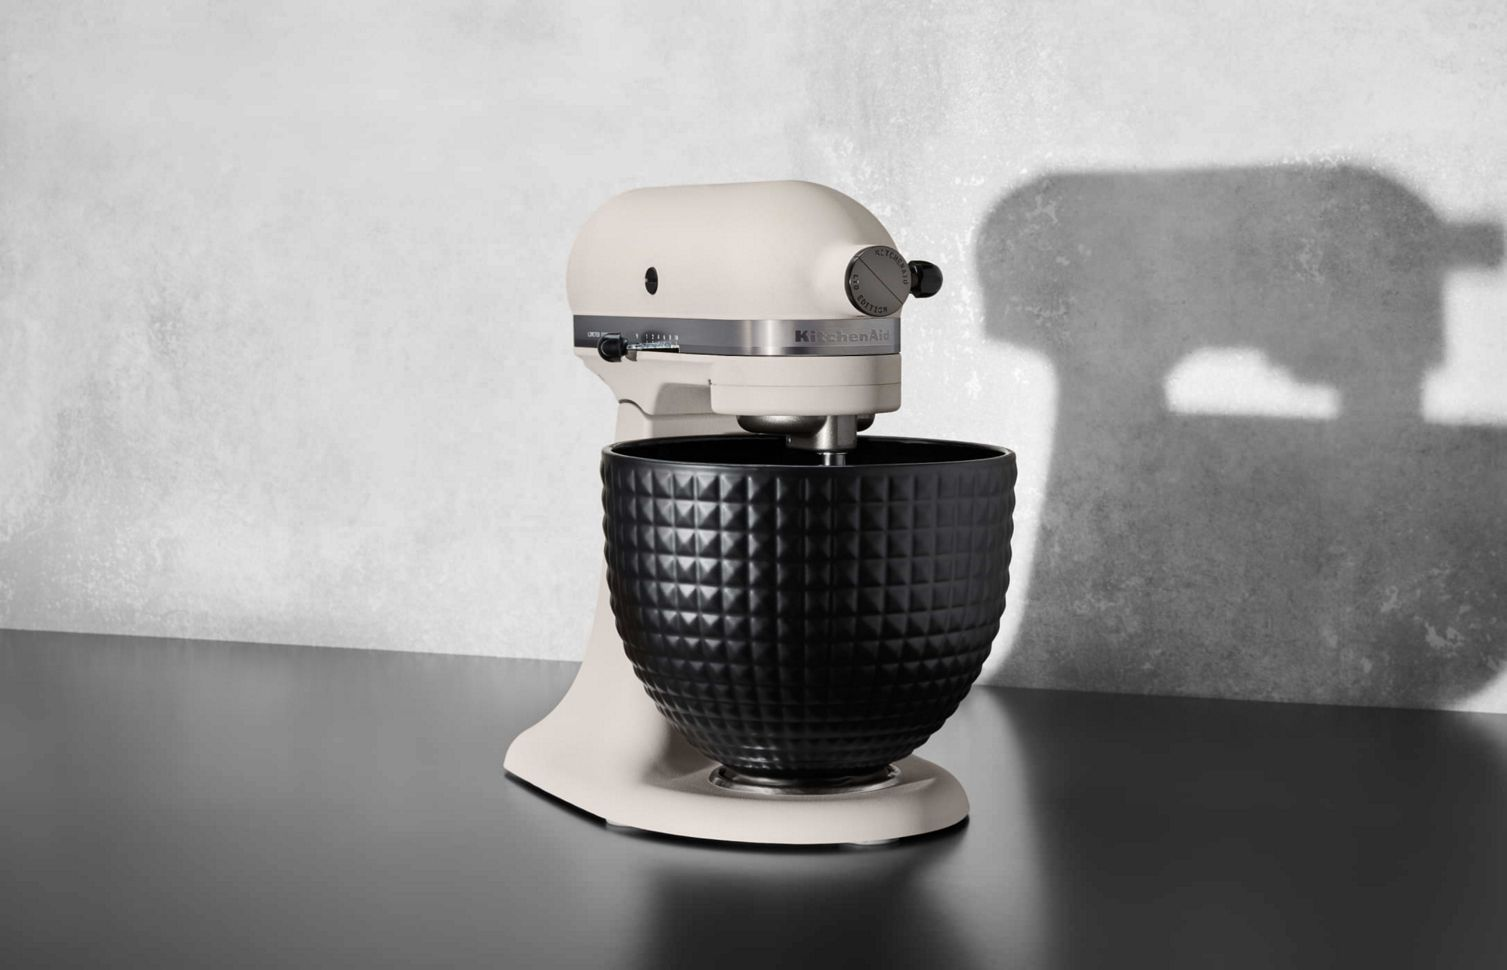 A stand-alone Limited Edition Stand Mixer with a black ceramic studded bowl.